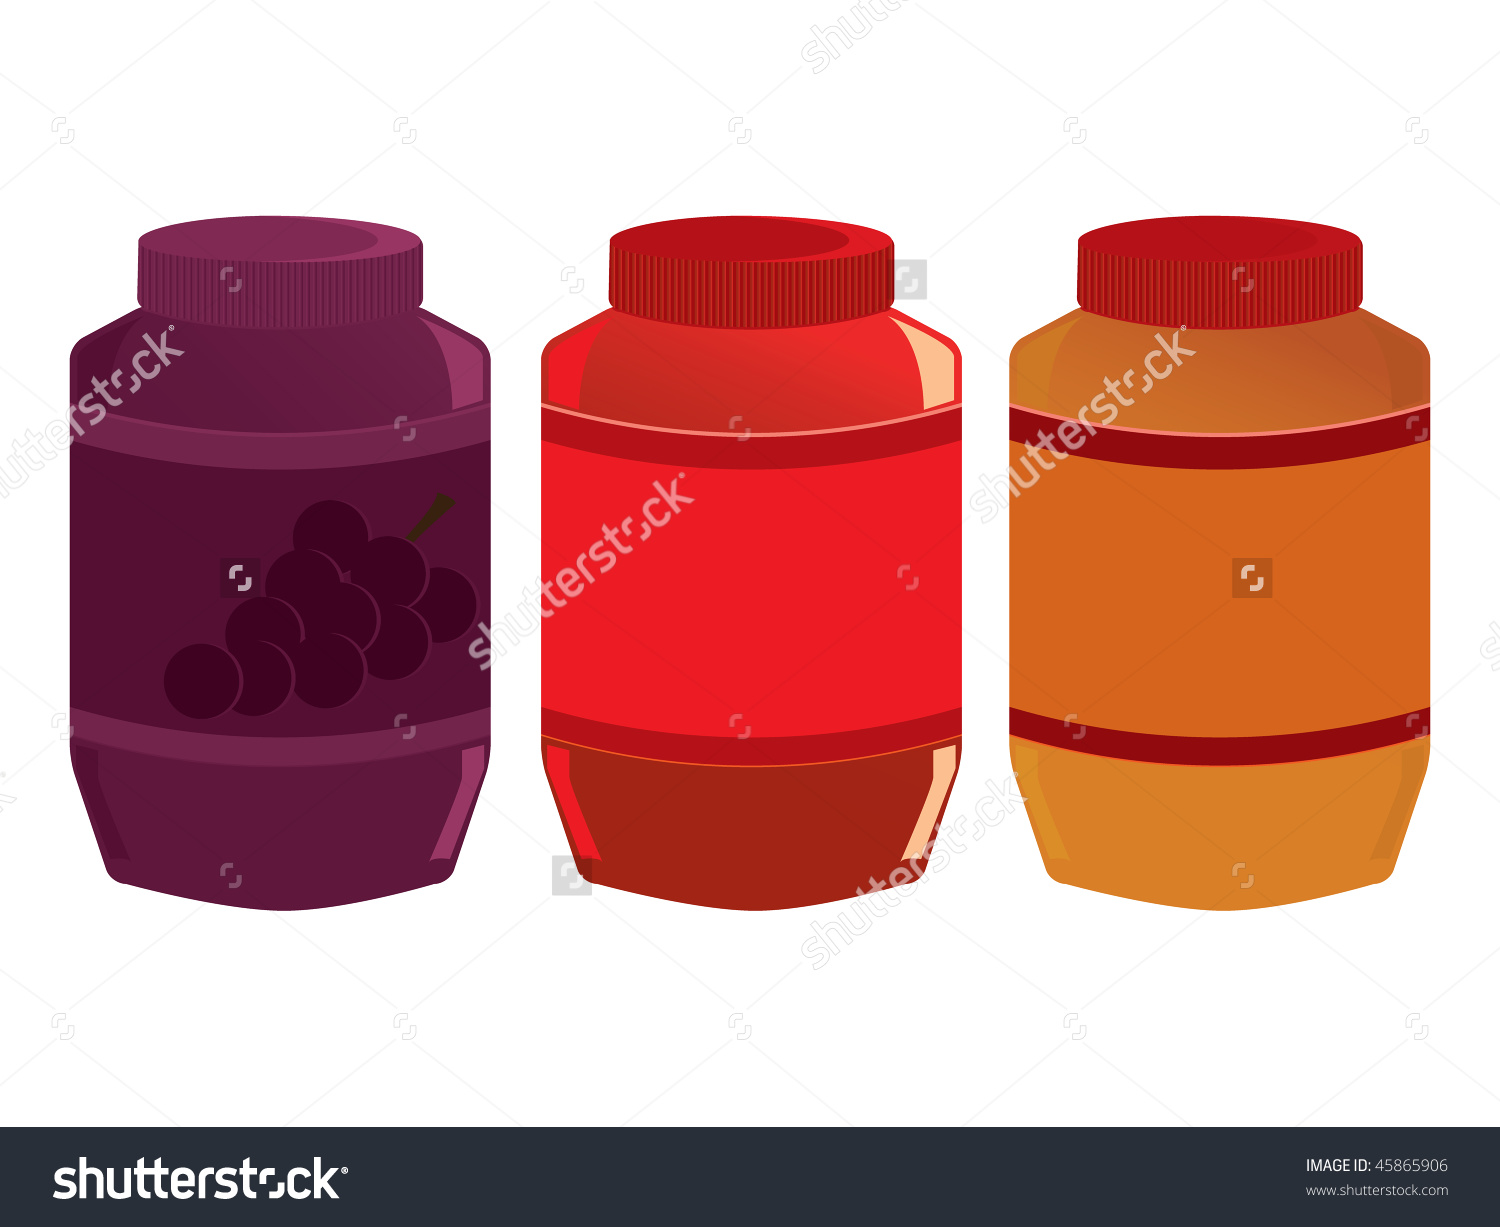 Jar clipart peanut butter and jelly Clipart Peanut peanut jelly Clipart